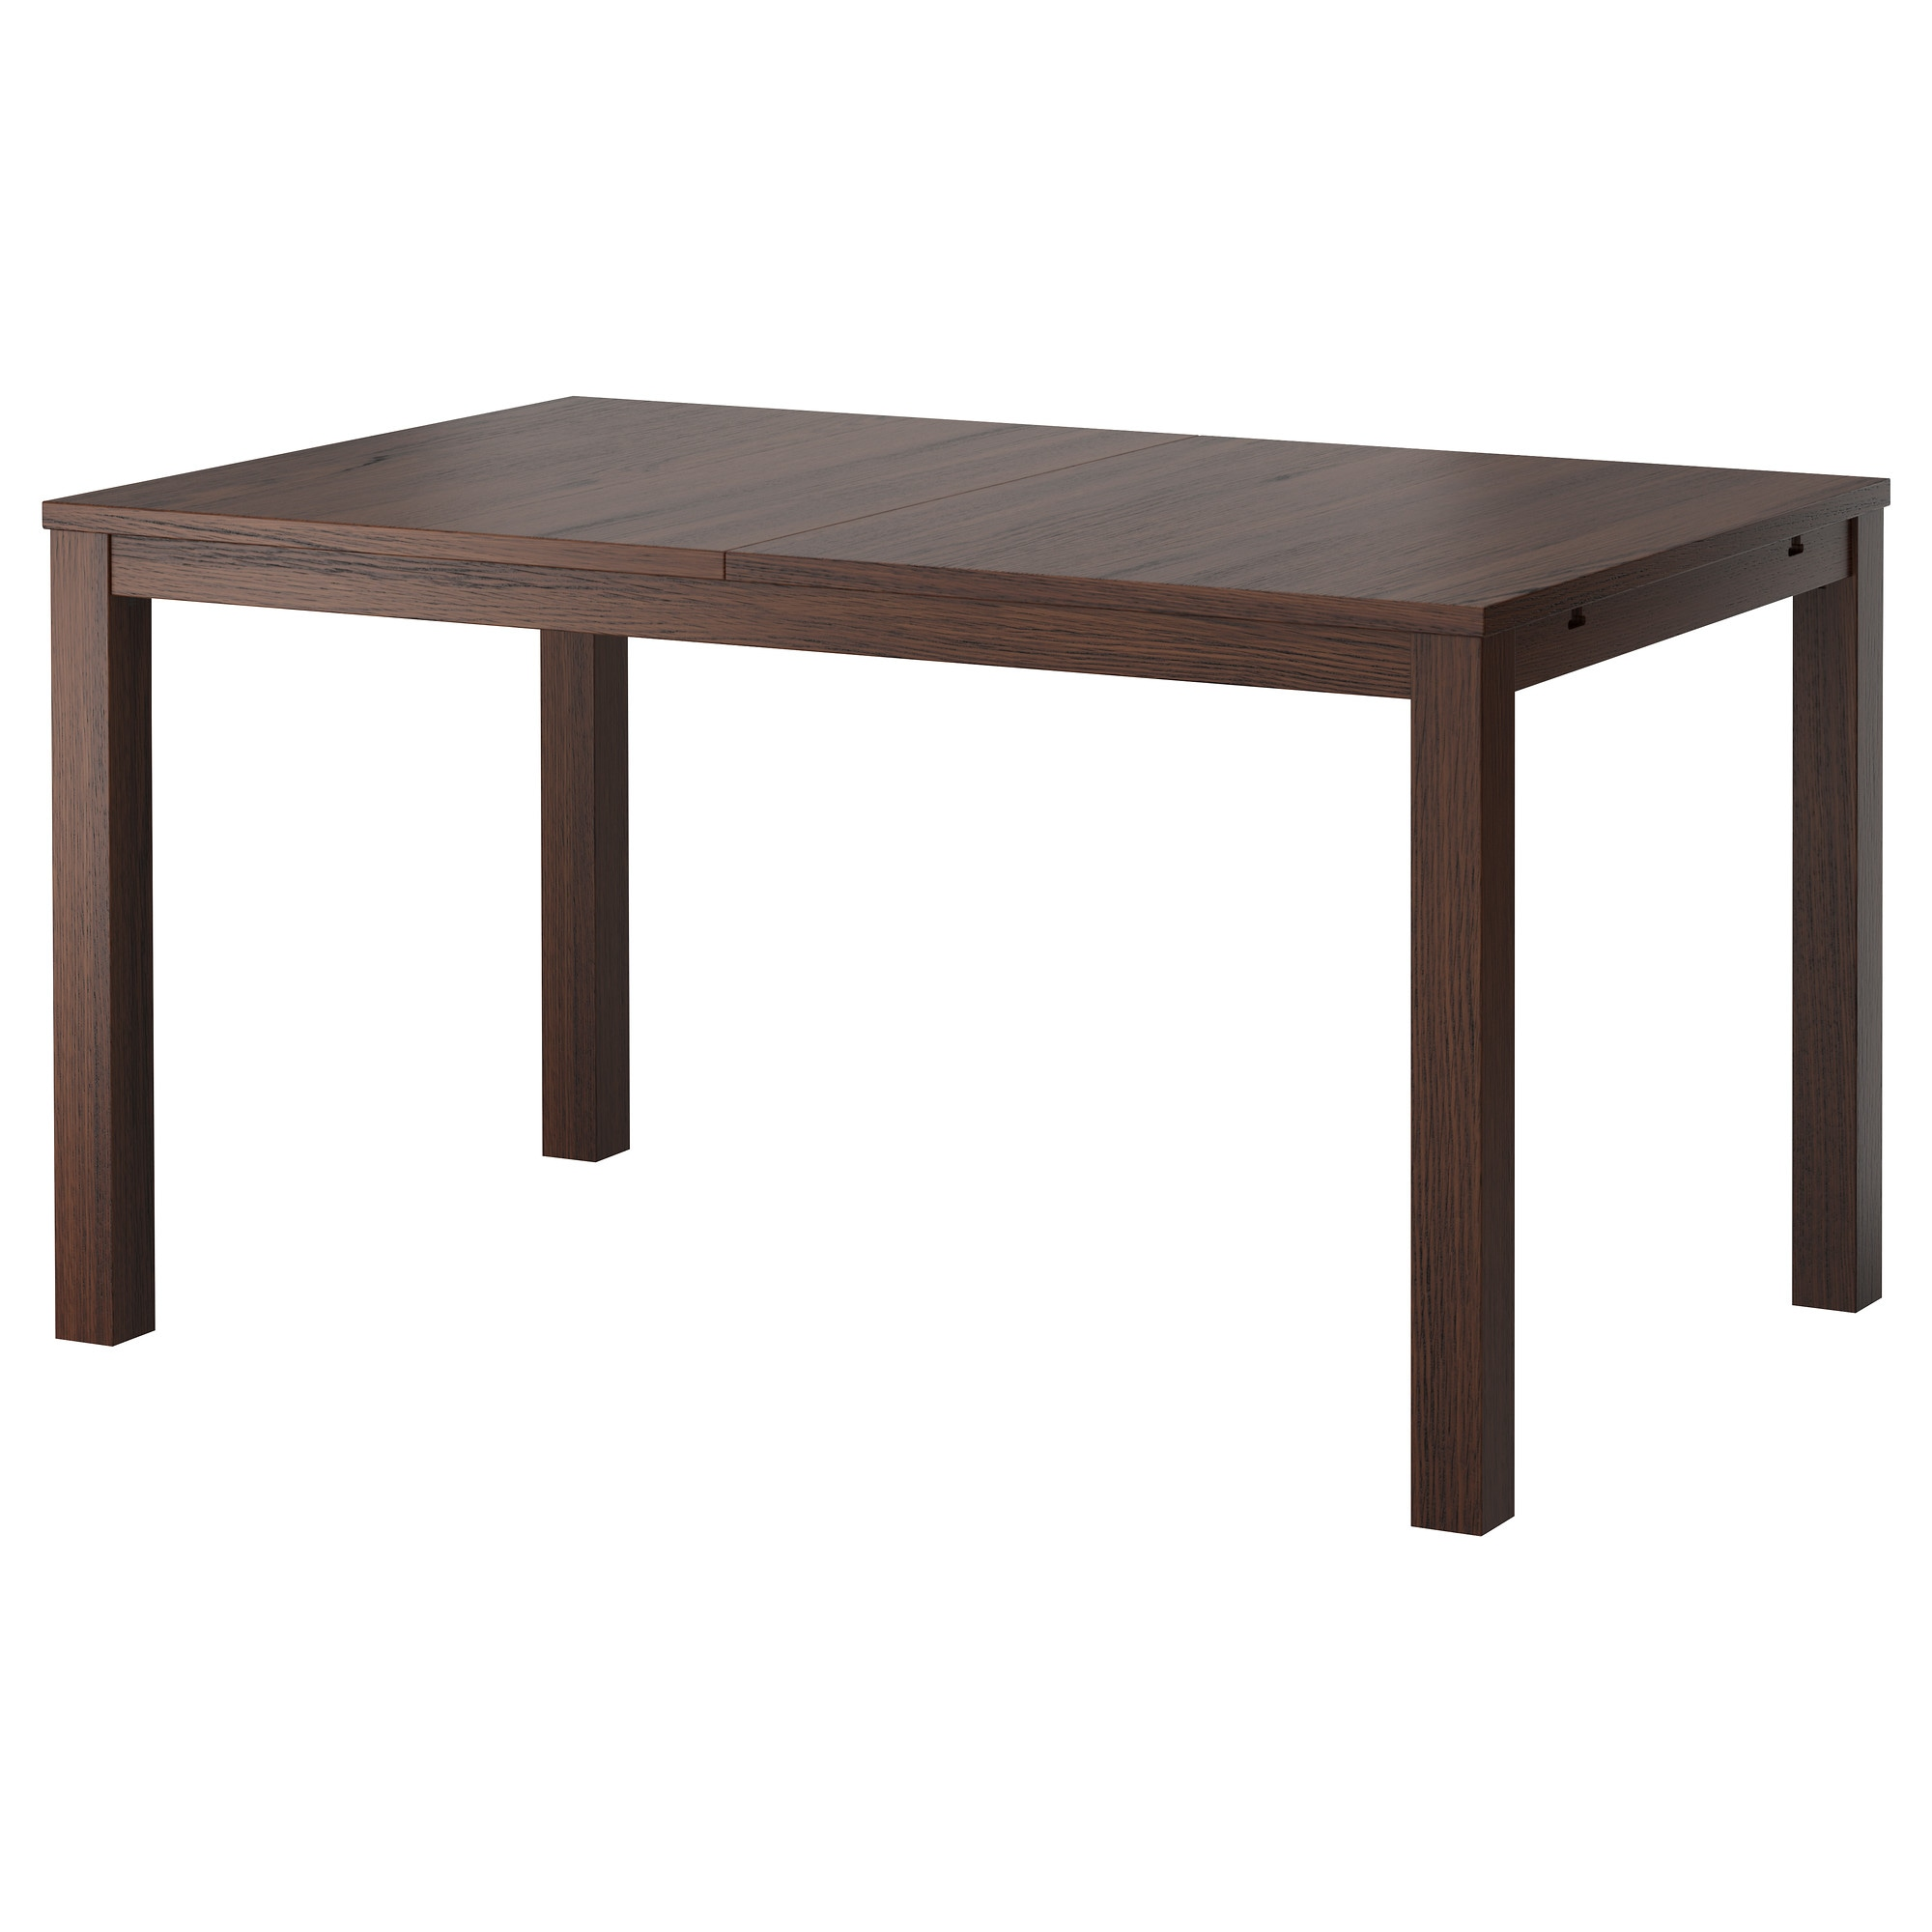 Dining Table bjursta extendable table - brown-black - ikea